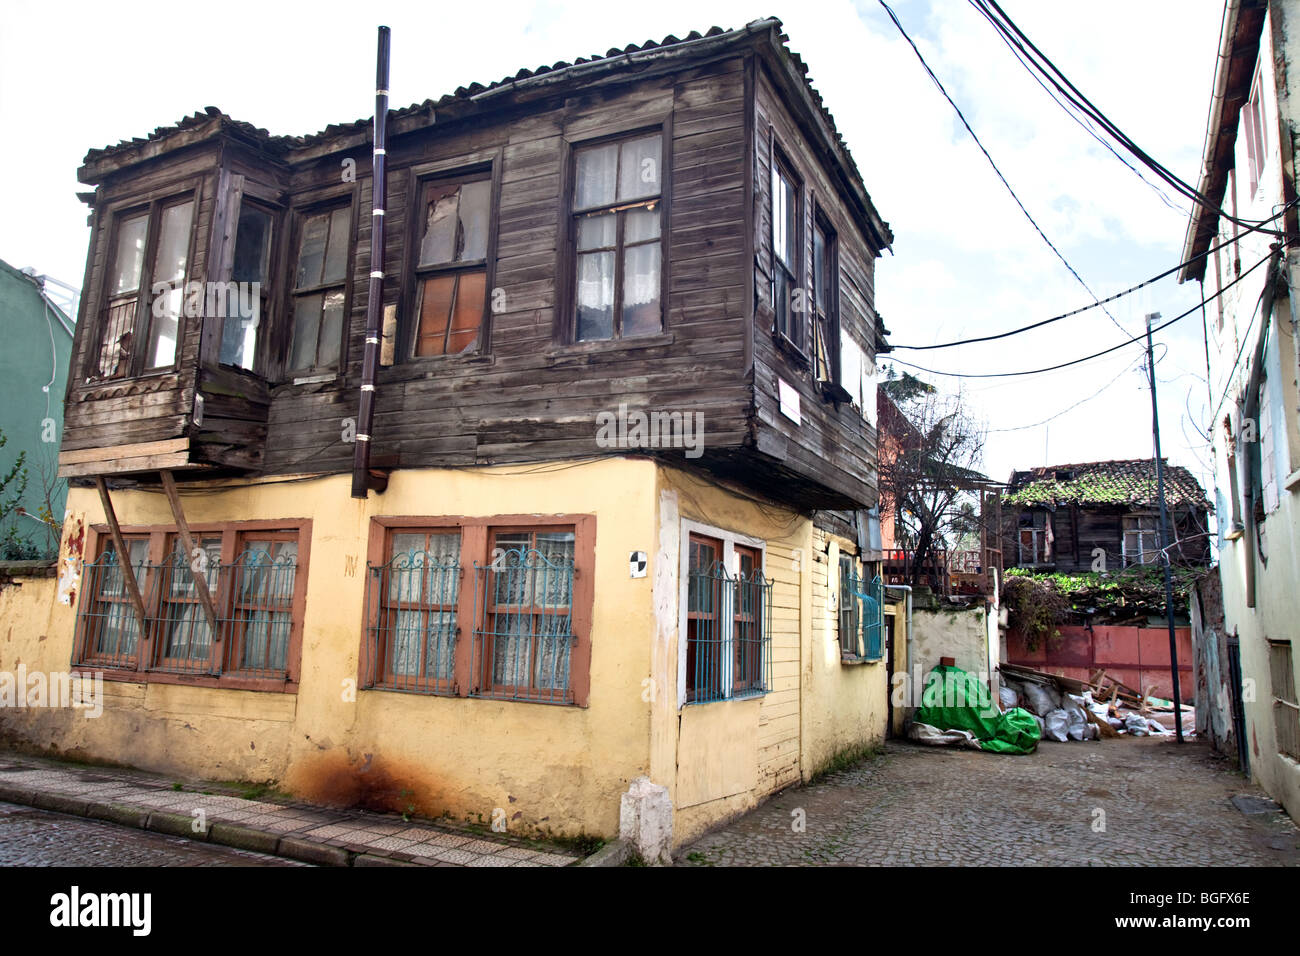 alte h user in balat stadtteil von istanbul stockfoto bild 27394710 alamy. Black Bedroom Furniture Sets. Home Design Ideas